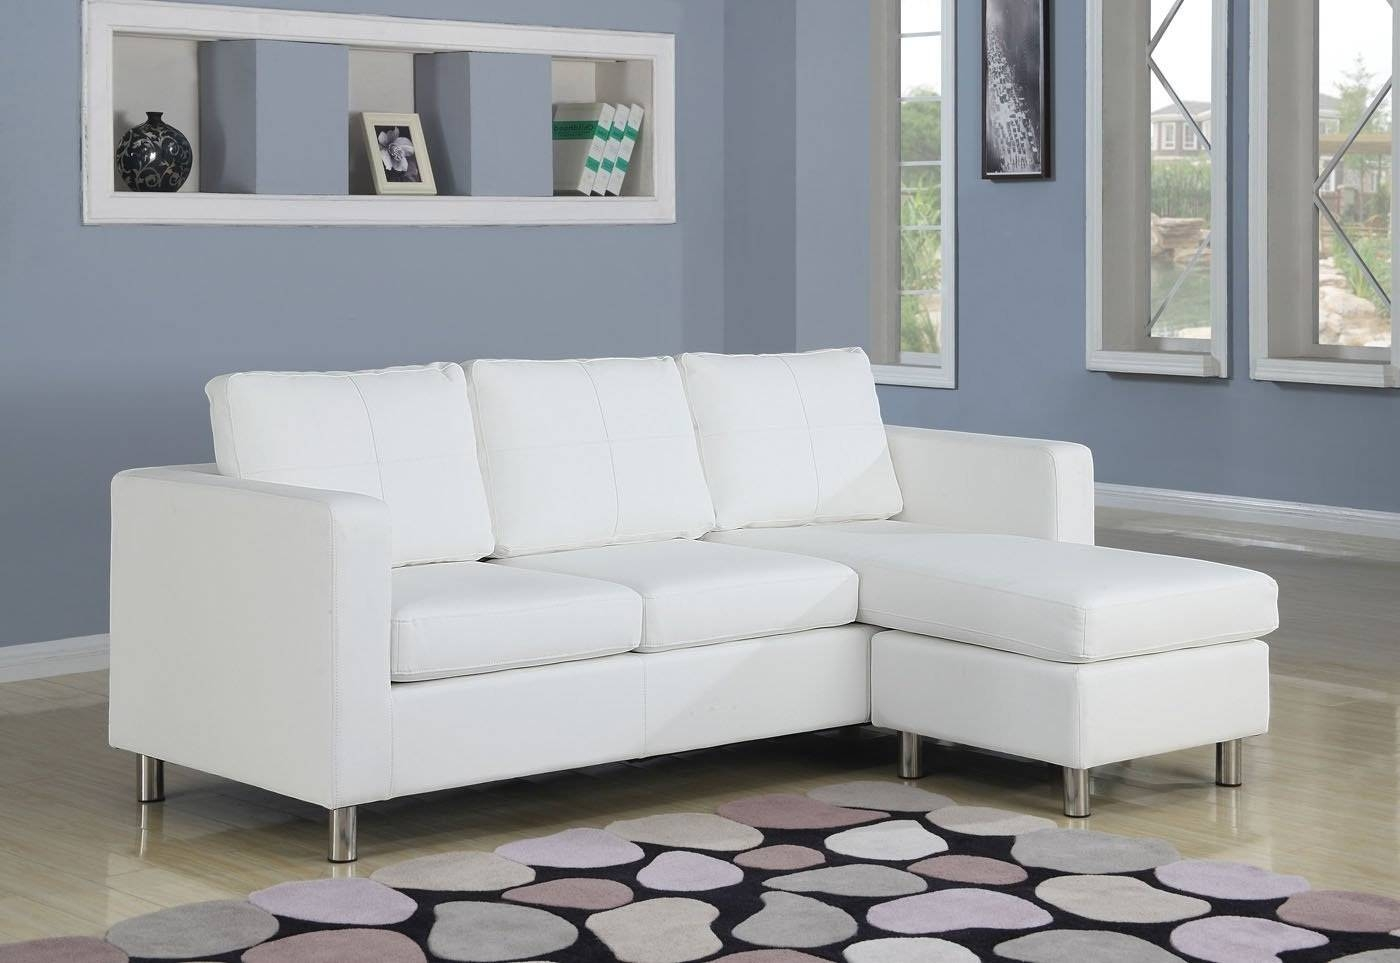 Best Small Sectional Sofa With Chaise 49 On Sofas And Couches regarding Small Sofas With Chaise Lounge (Image 2 of 15)